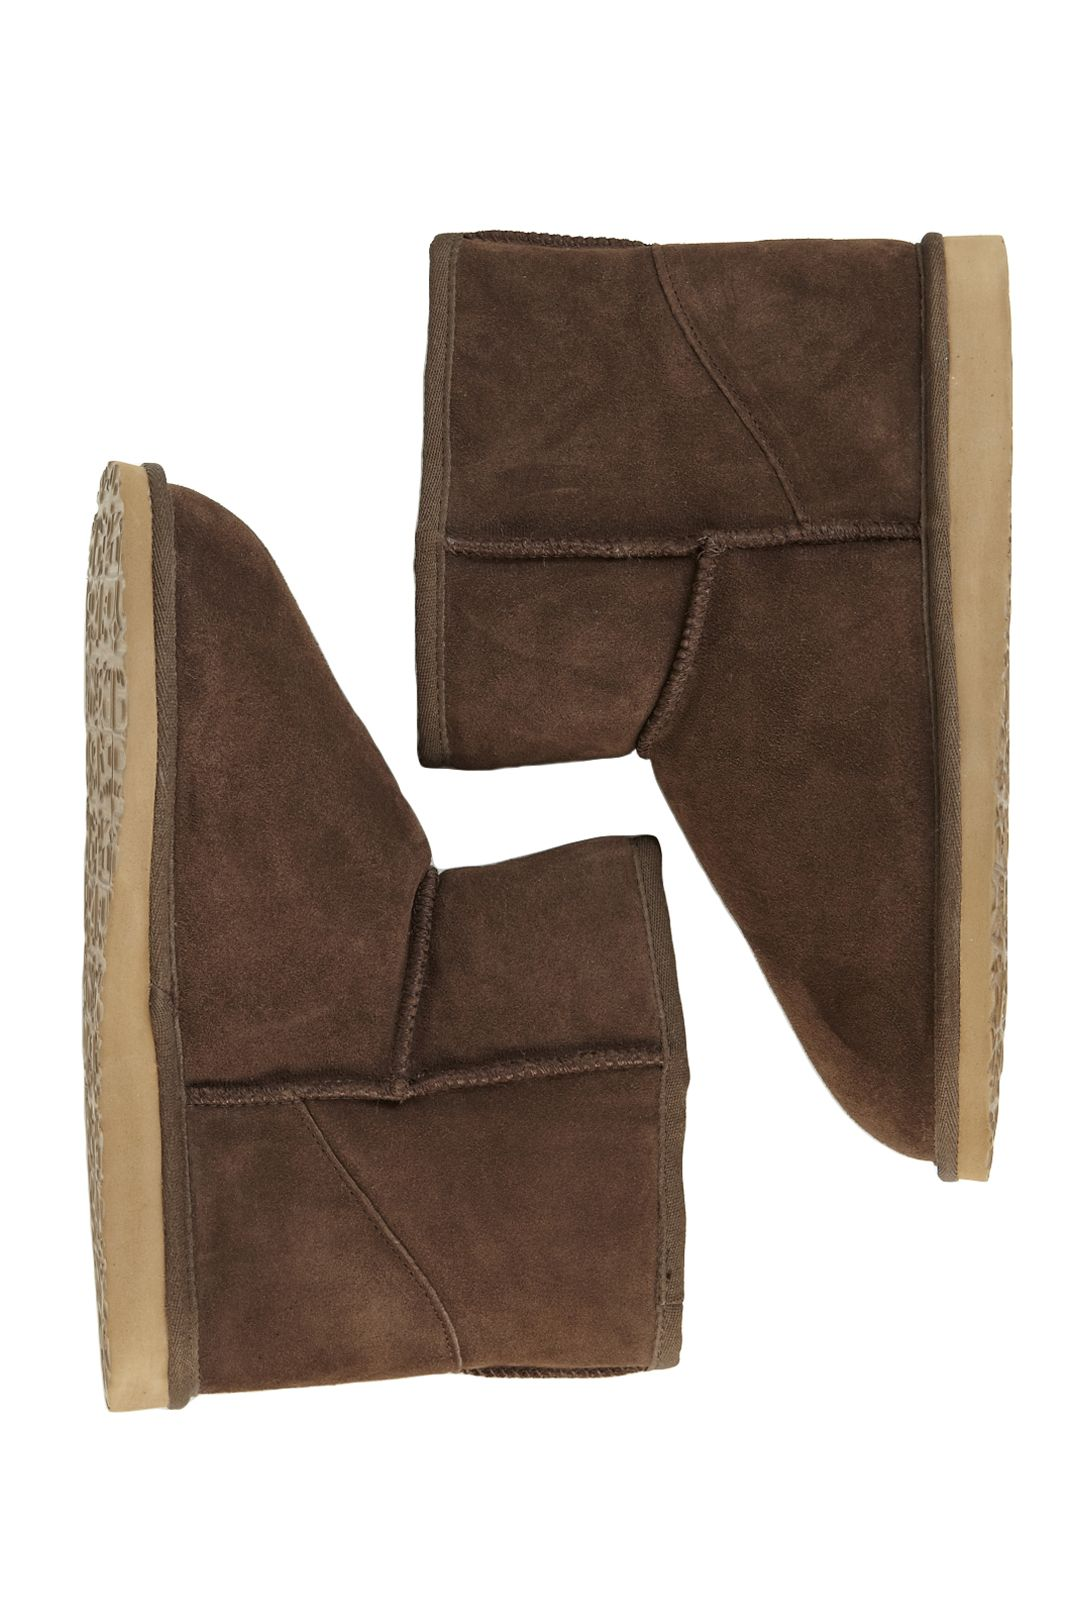 582e7a387a Peter s Famous Homeboots